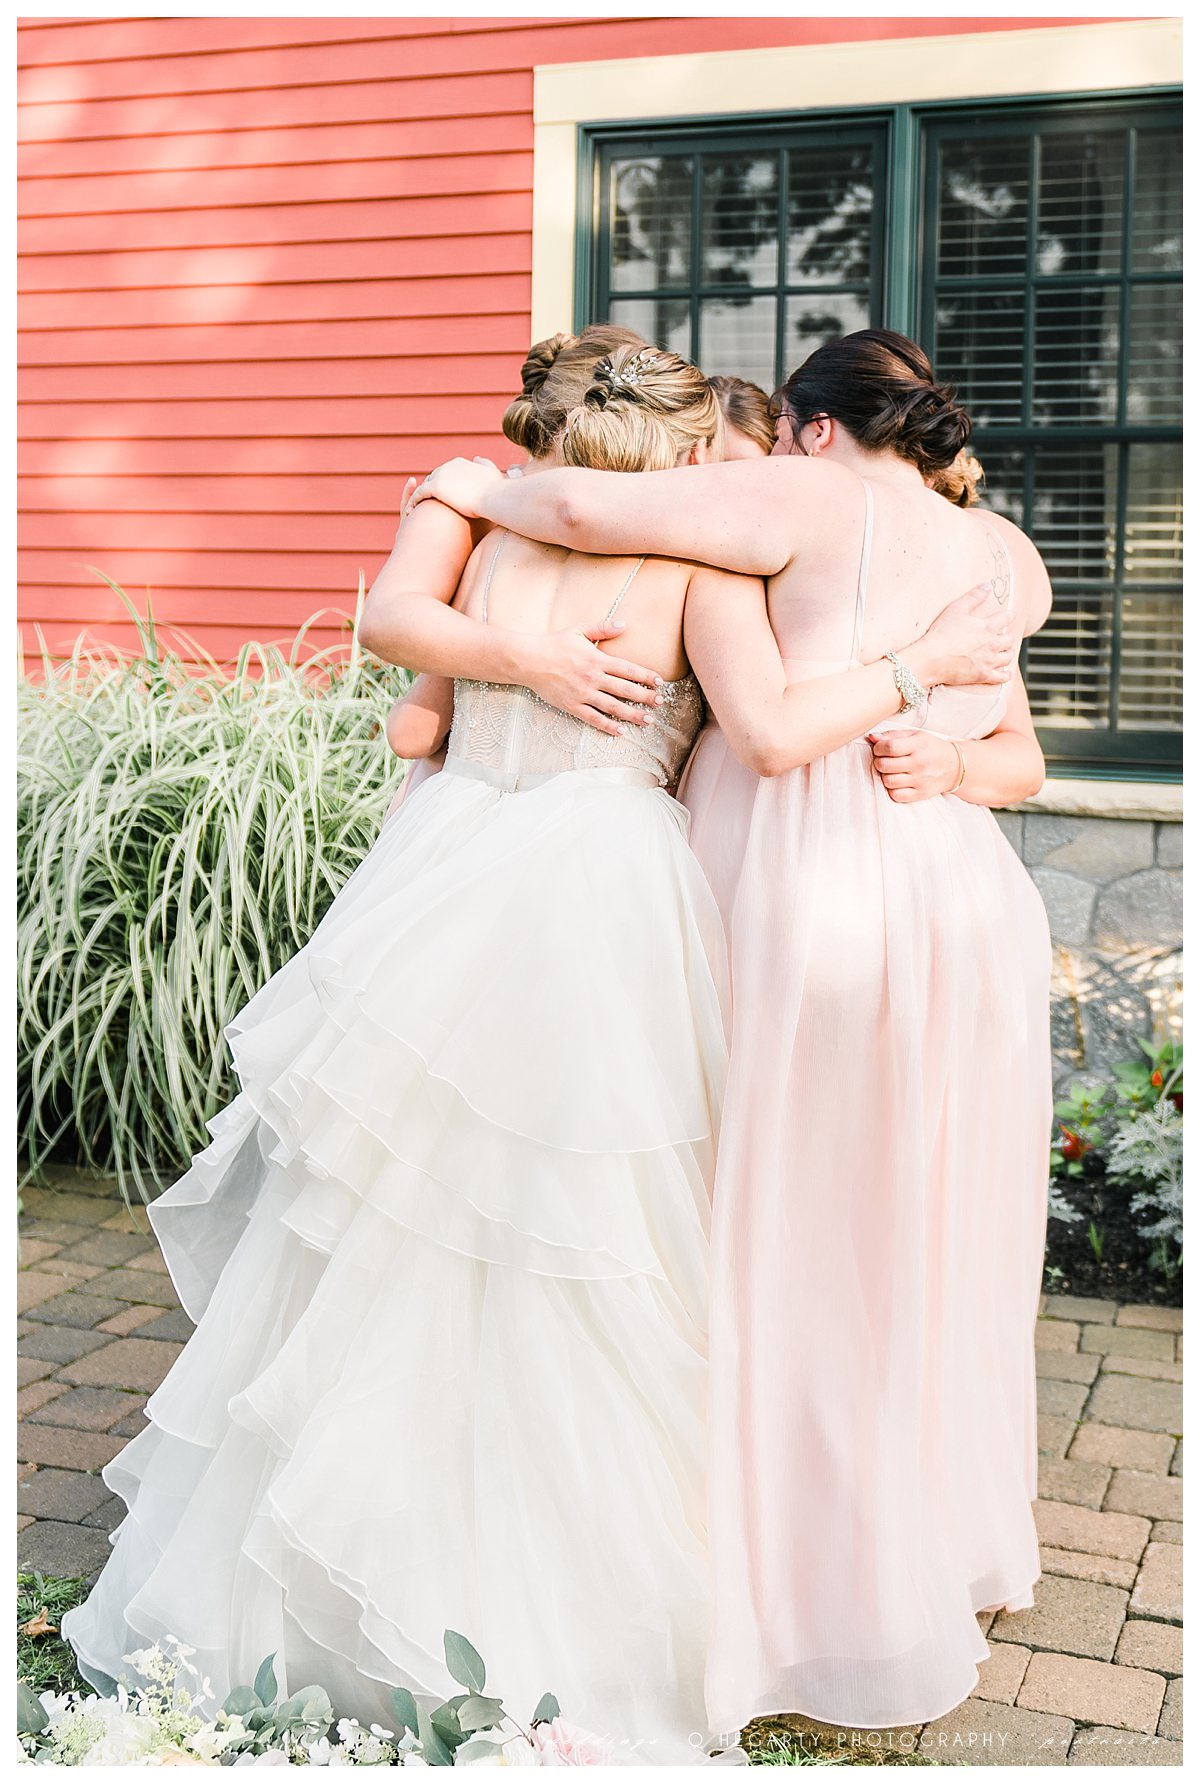 bridal party group hug photos by Q Hegarty Photography The red barn at outlook farm wedding